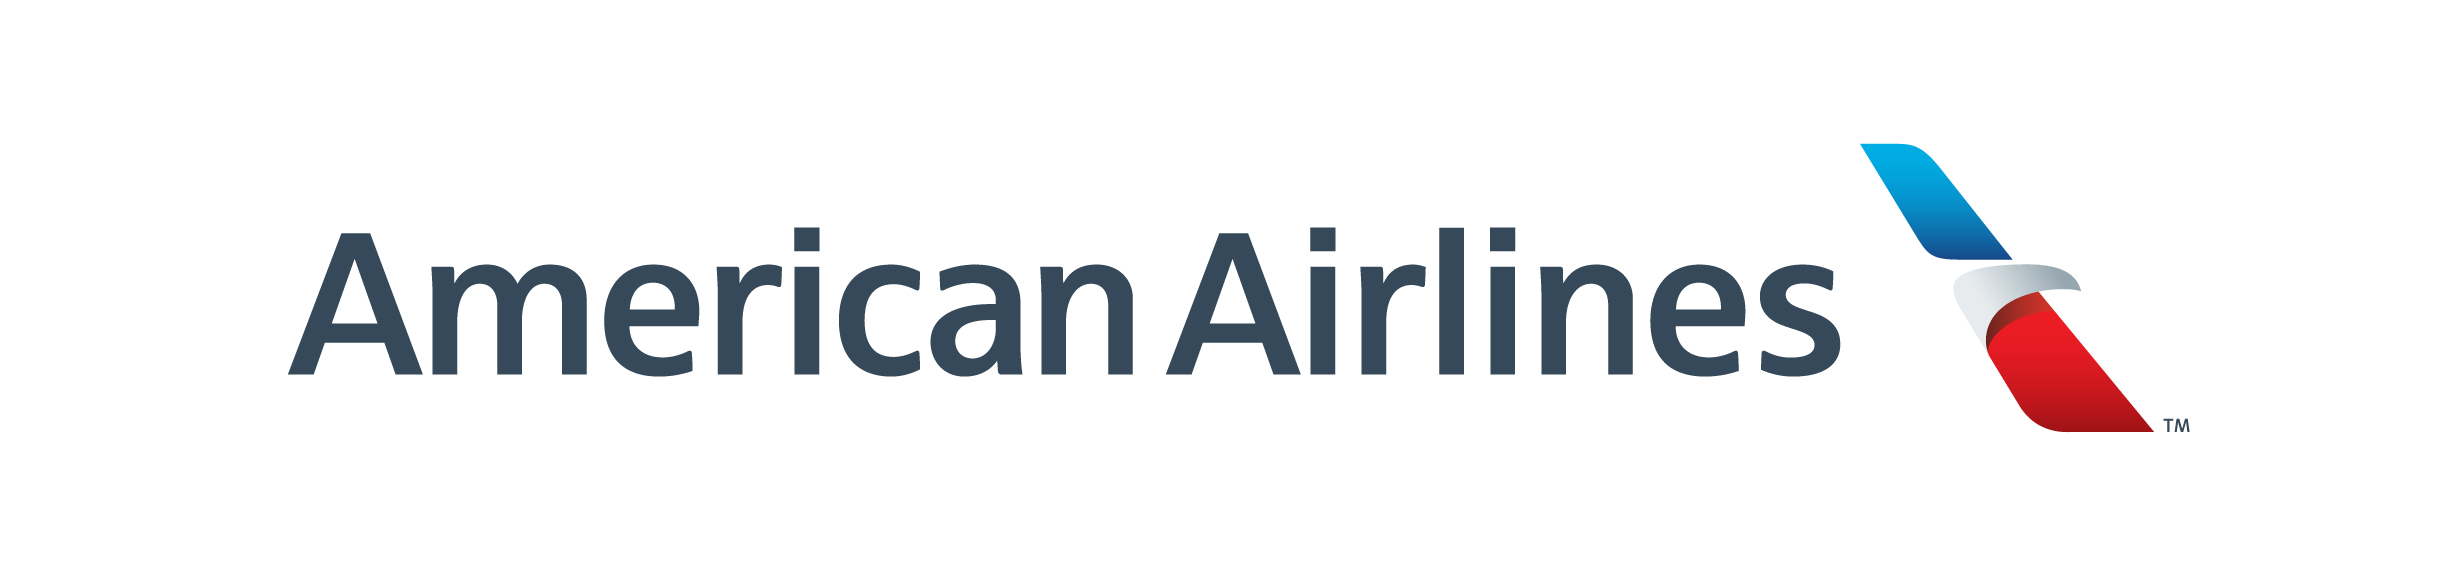 /site/uploads/exhibitor-logos/american-airlines.jpg